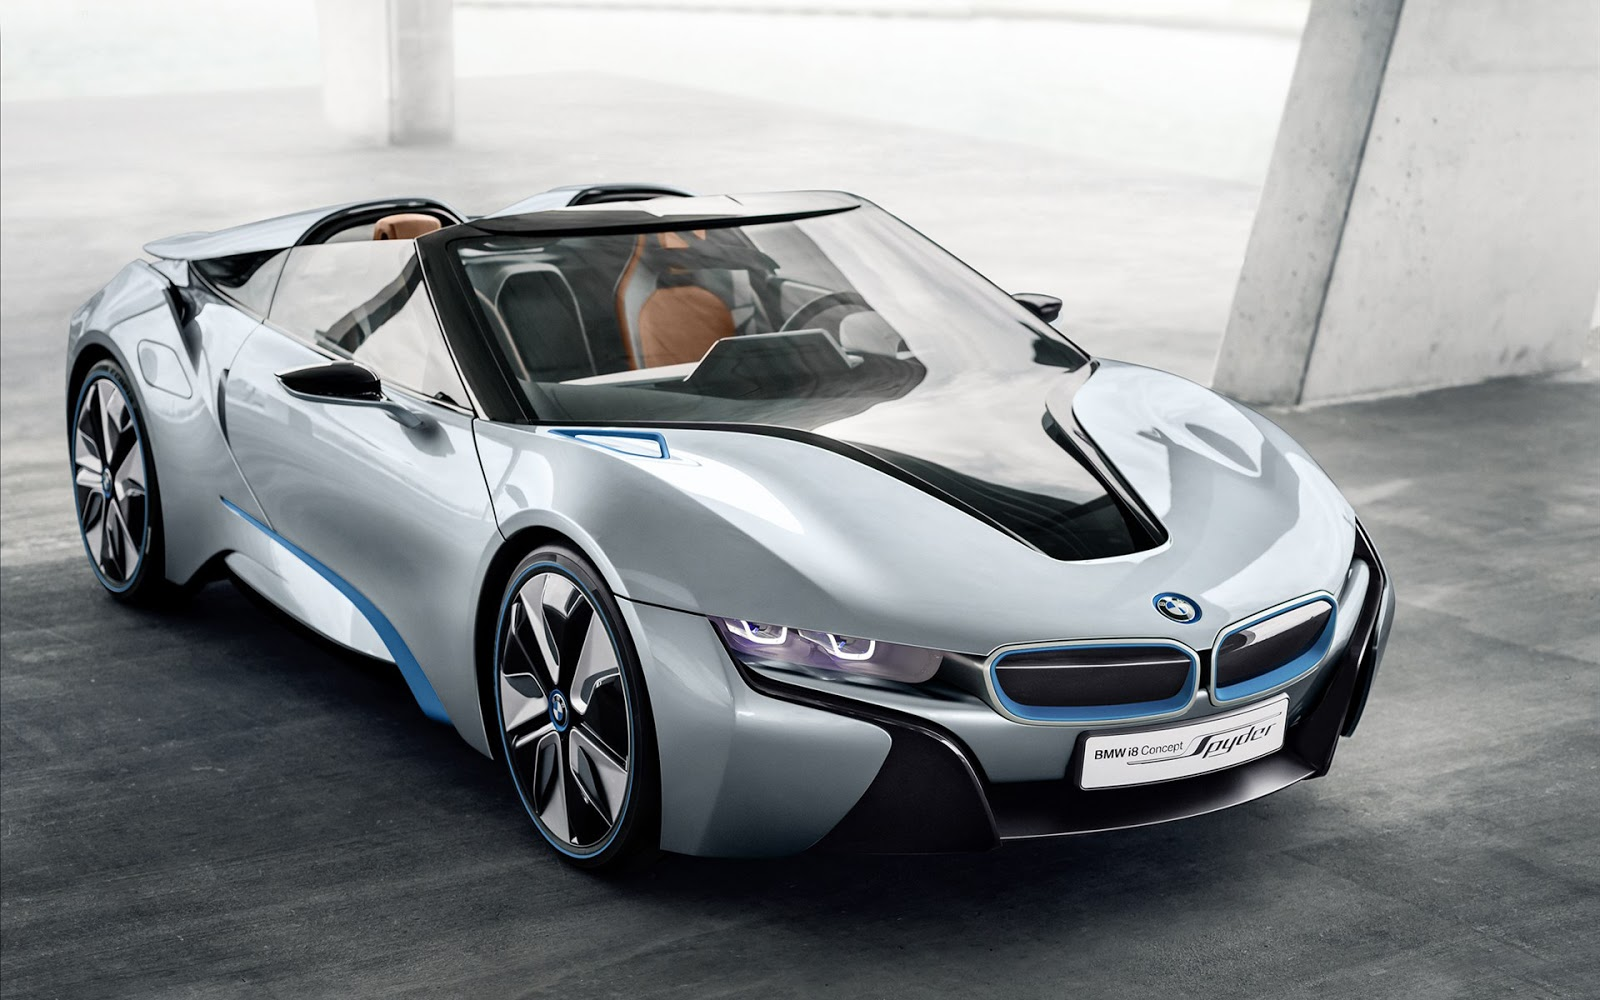 http://2.bp.blogspot.com/-FZ8vuf96uH4/ULdas4EATcI/AAAAAAAAAs0/Sc7ROcdZA04/s1600/Download+BMW+i8+Spyder+Concept+2012+HD+Widescreen+car+wallpaper.jpg